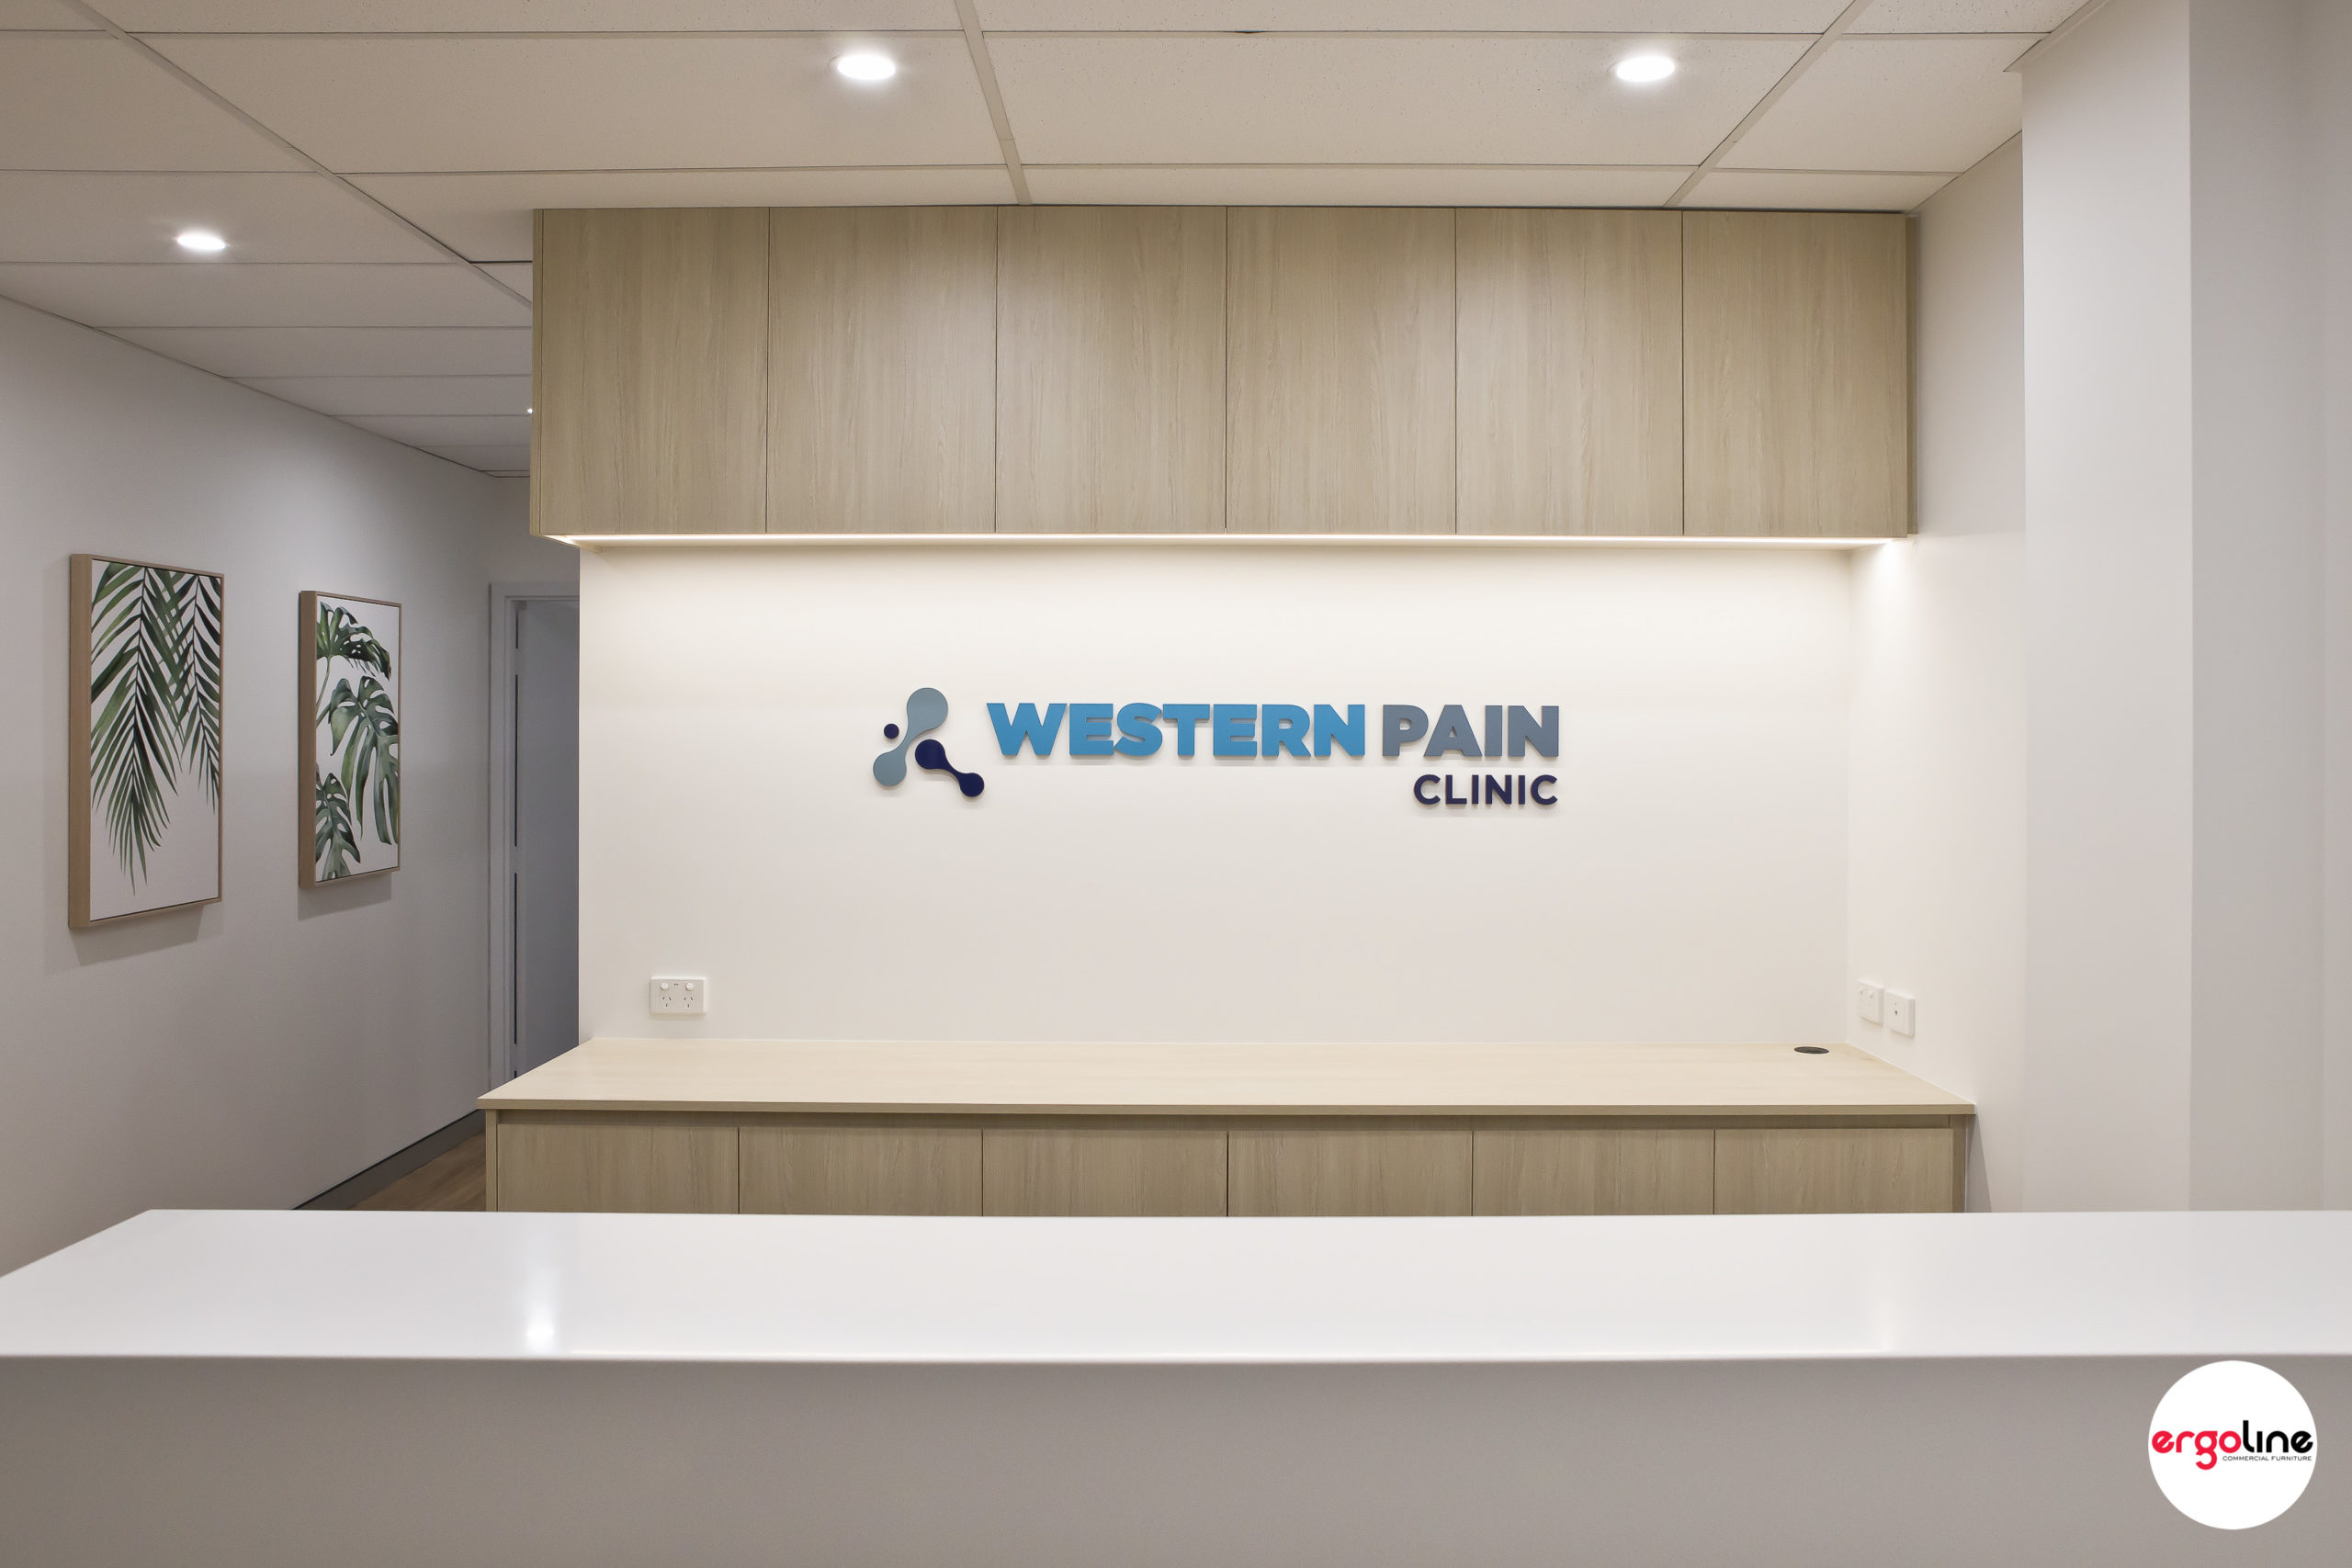 Western Pain Clinic